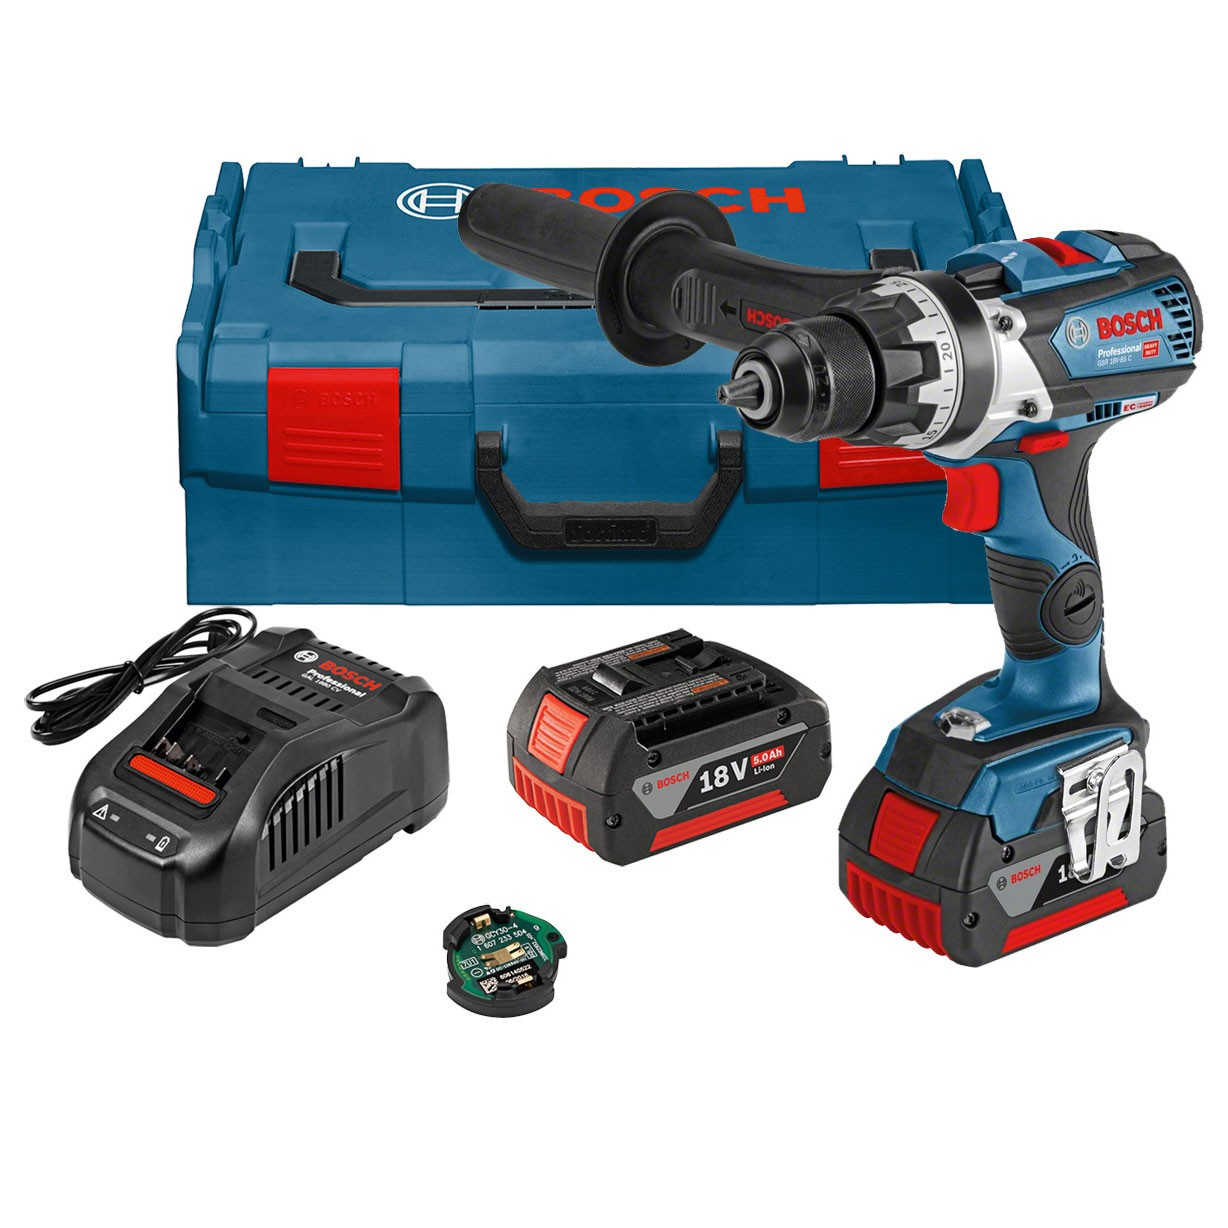 Bosch GSR 18 V-85 C Brushless Drill Driver inc GCY 30-4 Module & 2x 5.0Ah Batts